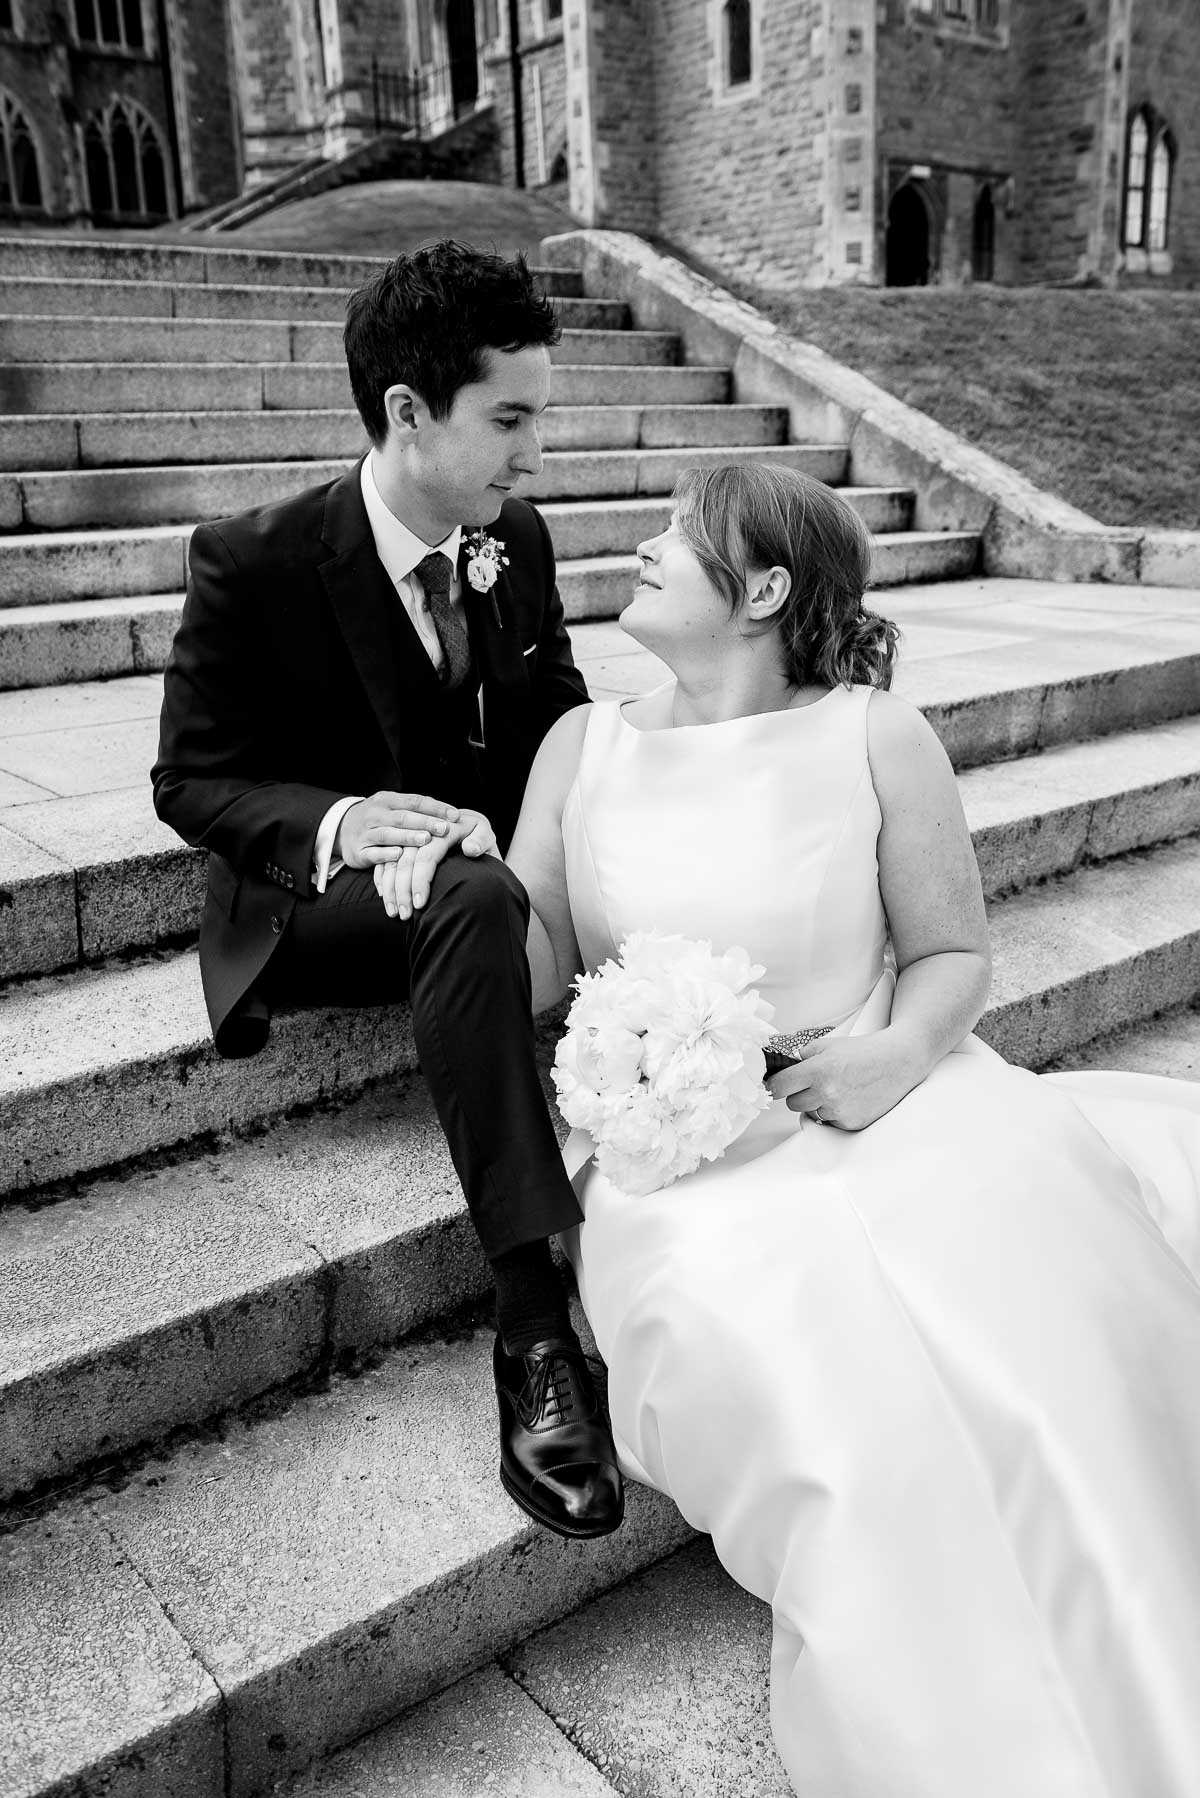 Wedding couple pose on steps in vanity fair style shot of the chapel